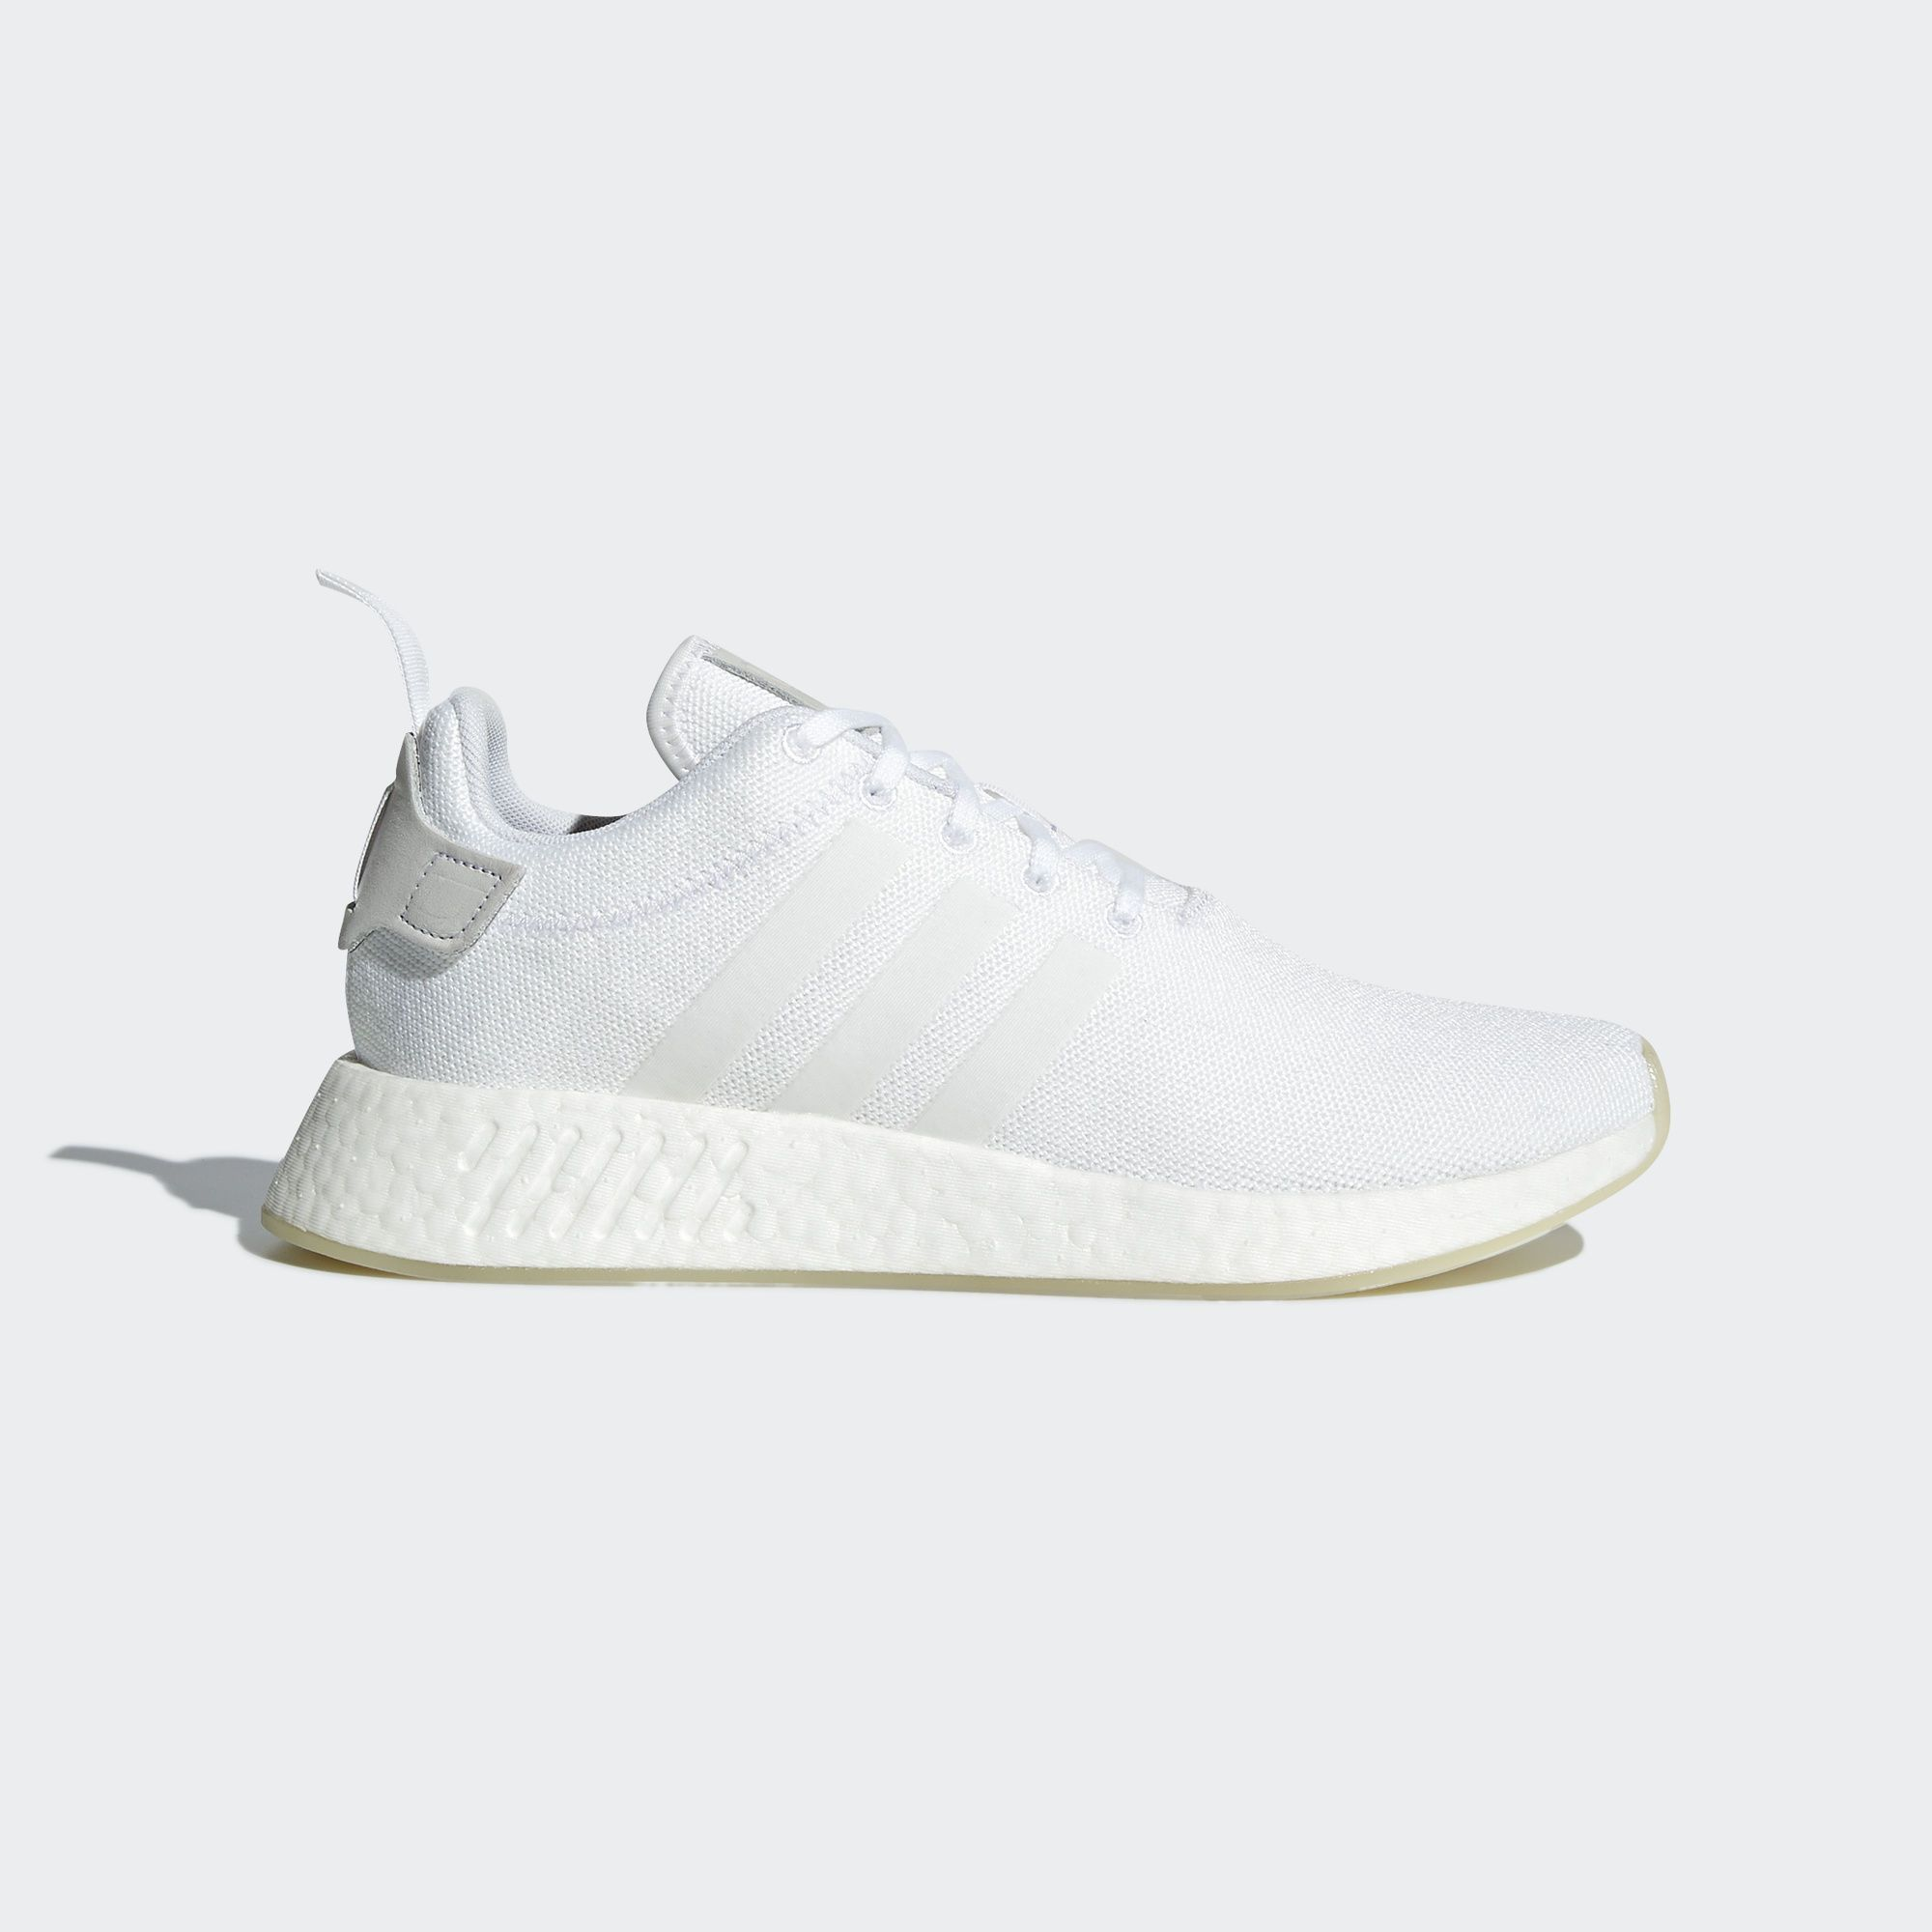 06fe1d7f82cd57 Shop the NMD R2 Shoes - White at adidas.com us! See all the styles and  colors of NMD R2 Shoes - White at the official adidas online shop.